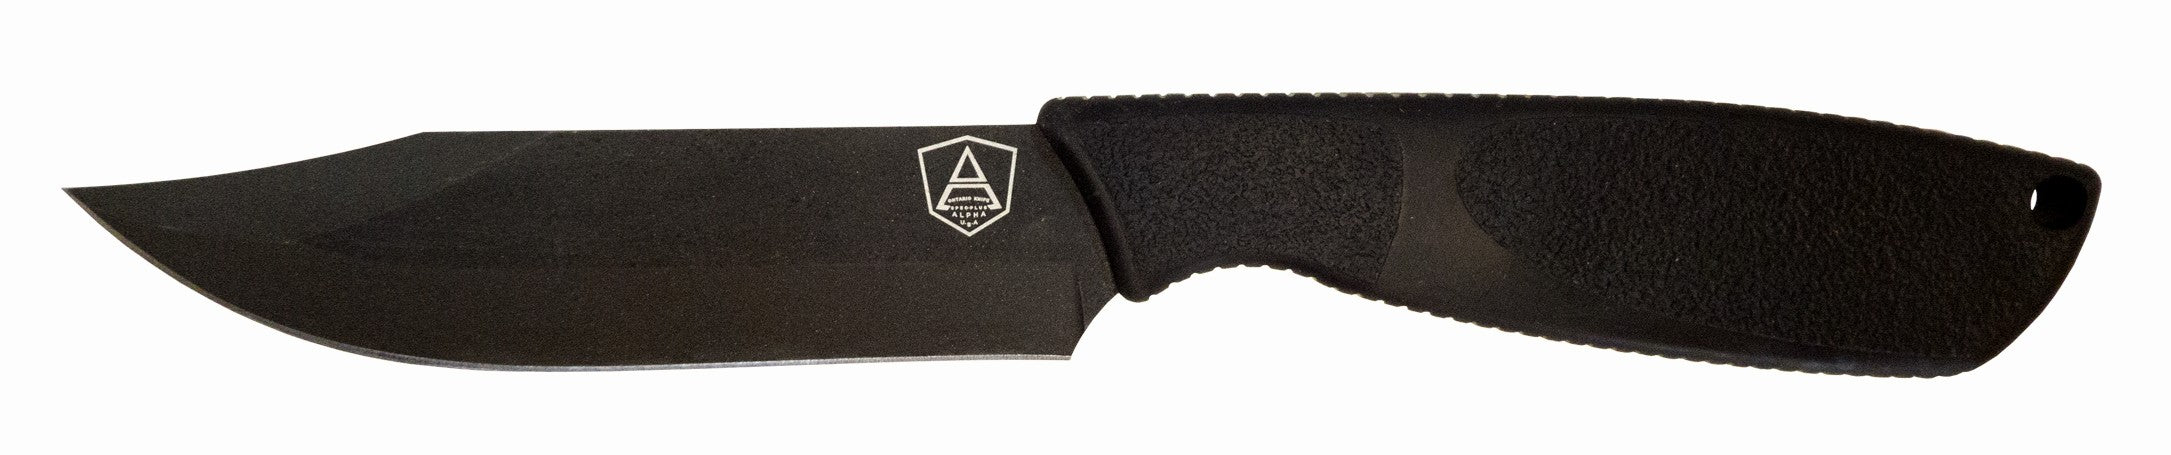 SPEC PLUS ALPHA SURVIVAL ONTARIO